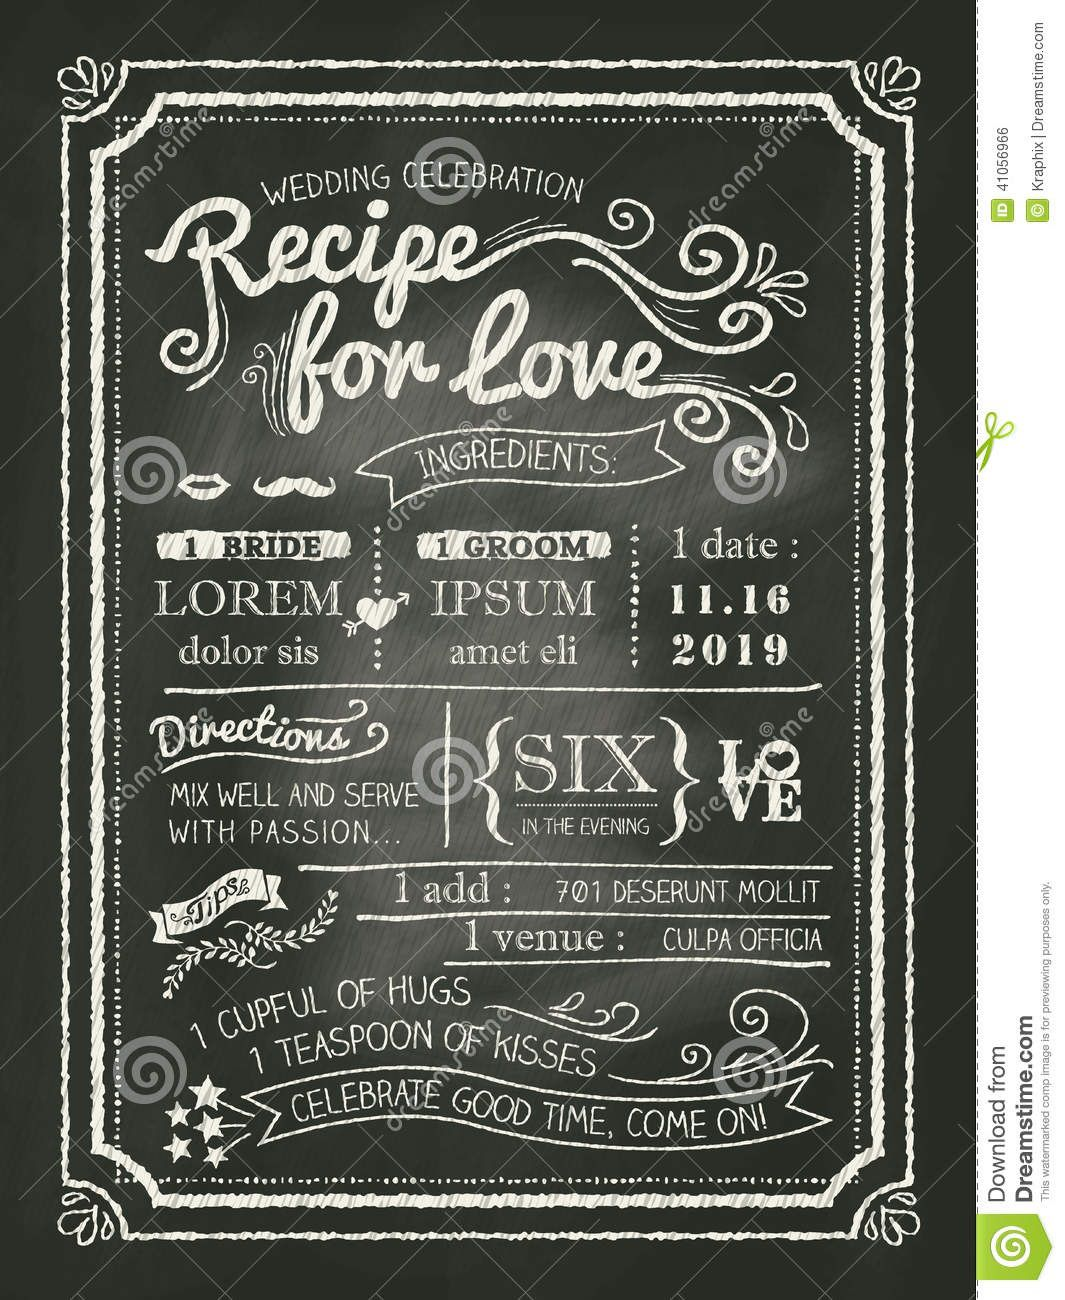 008 Amazing Chalkboard Invitation Template Free Design  Download Wedding